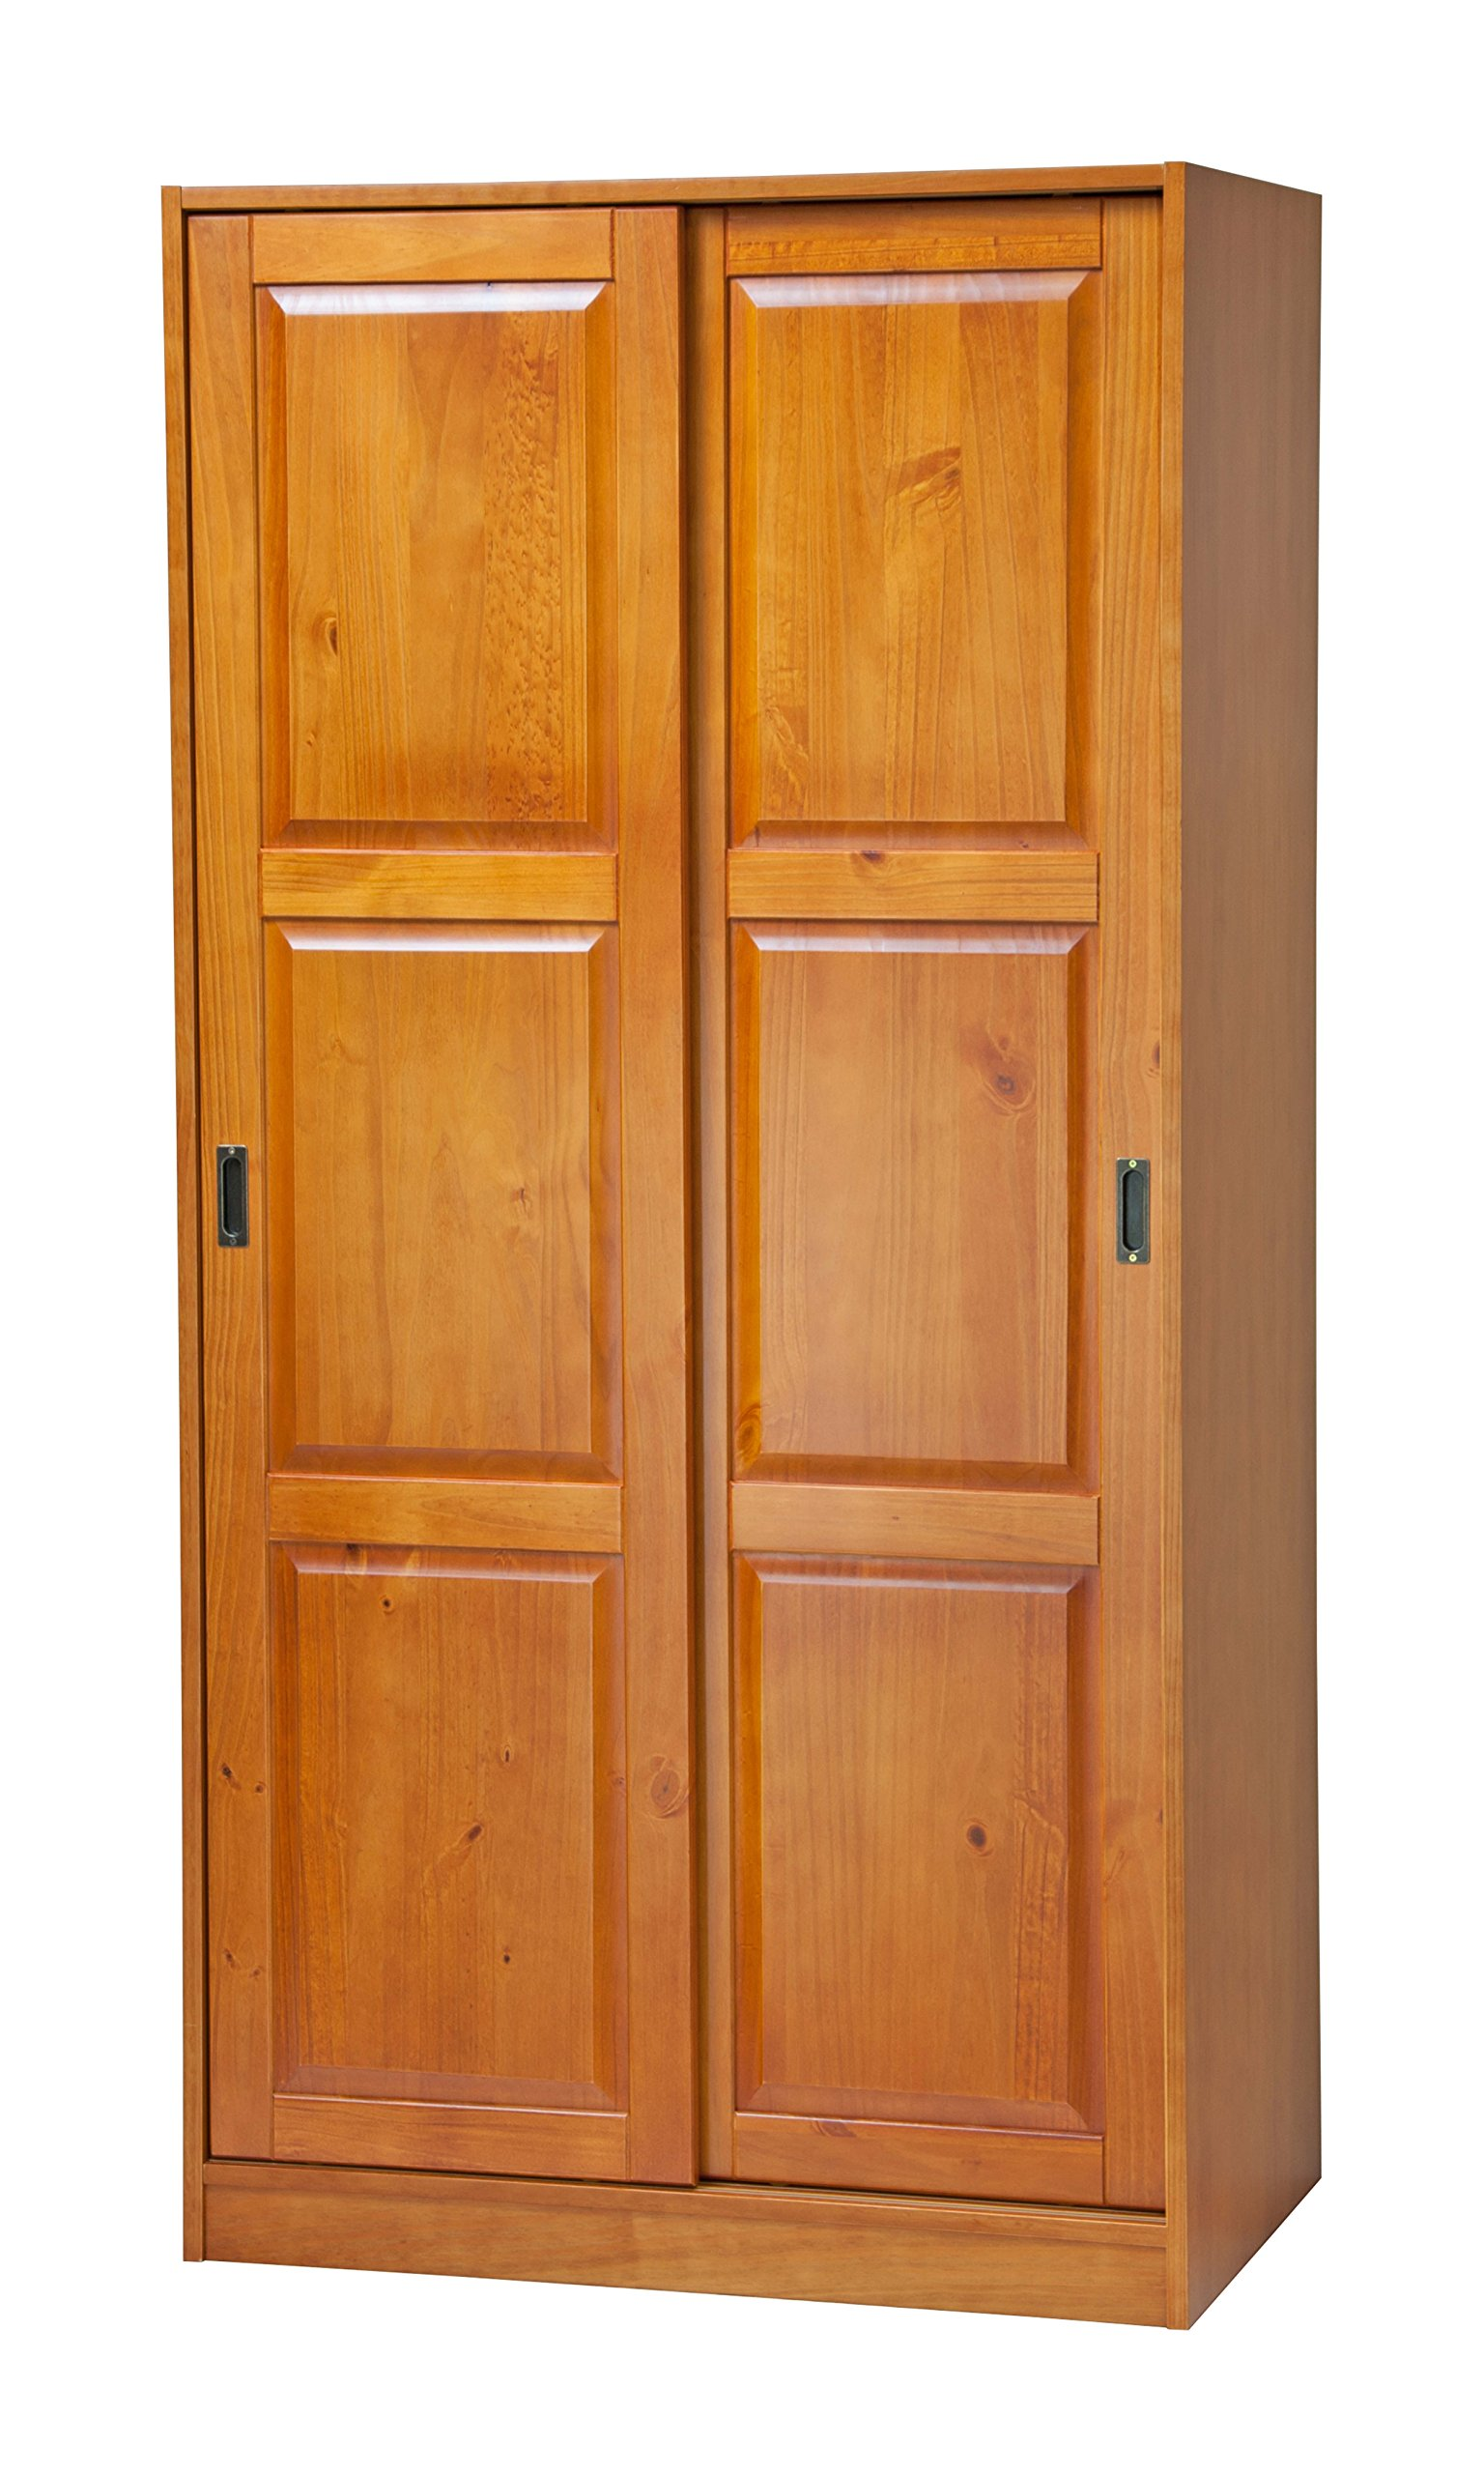 100% Solid Wood 2-Sliding Door Wardrobe/Armoire/Closet/Mudroom Storage by Palace Imports, Honey Pine. 1 Large Shelf, 1 Clothing Rod Included. Extra Optional Shelves Sold Separately. Requires Assembly by Palace Imports